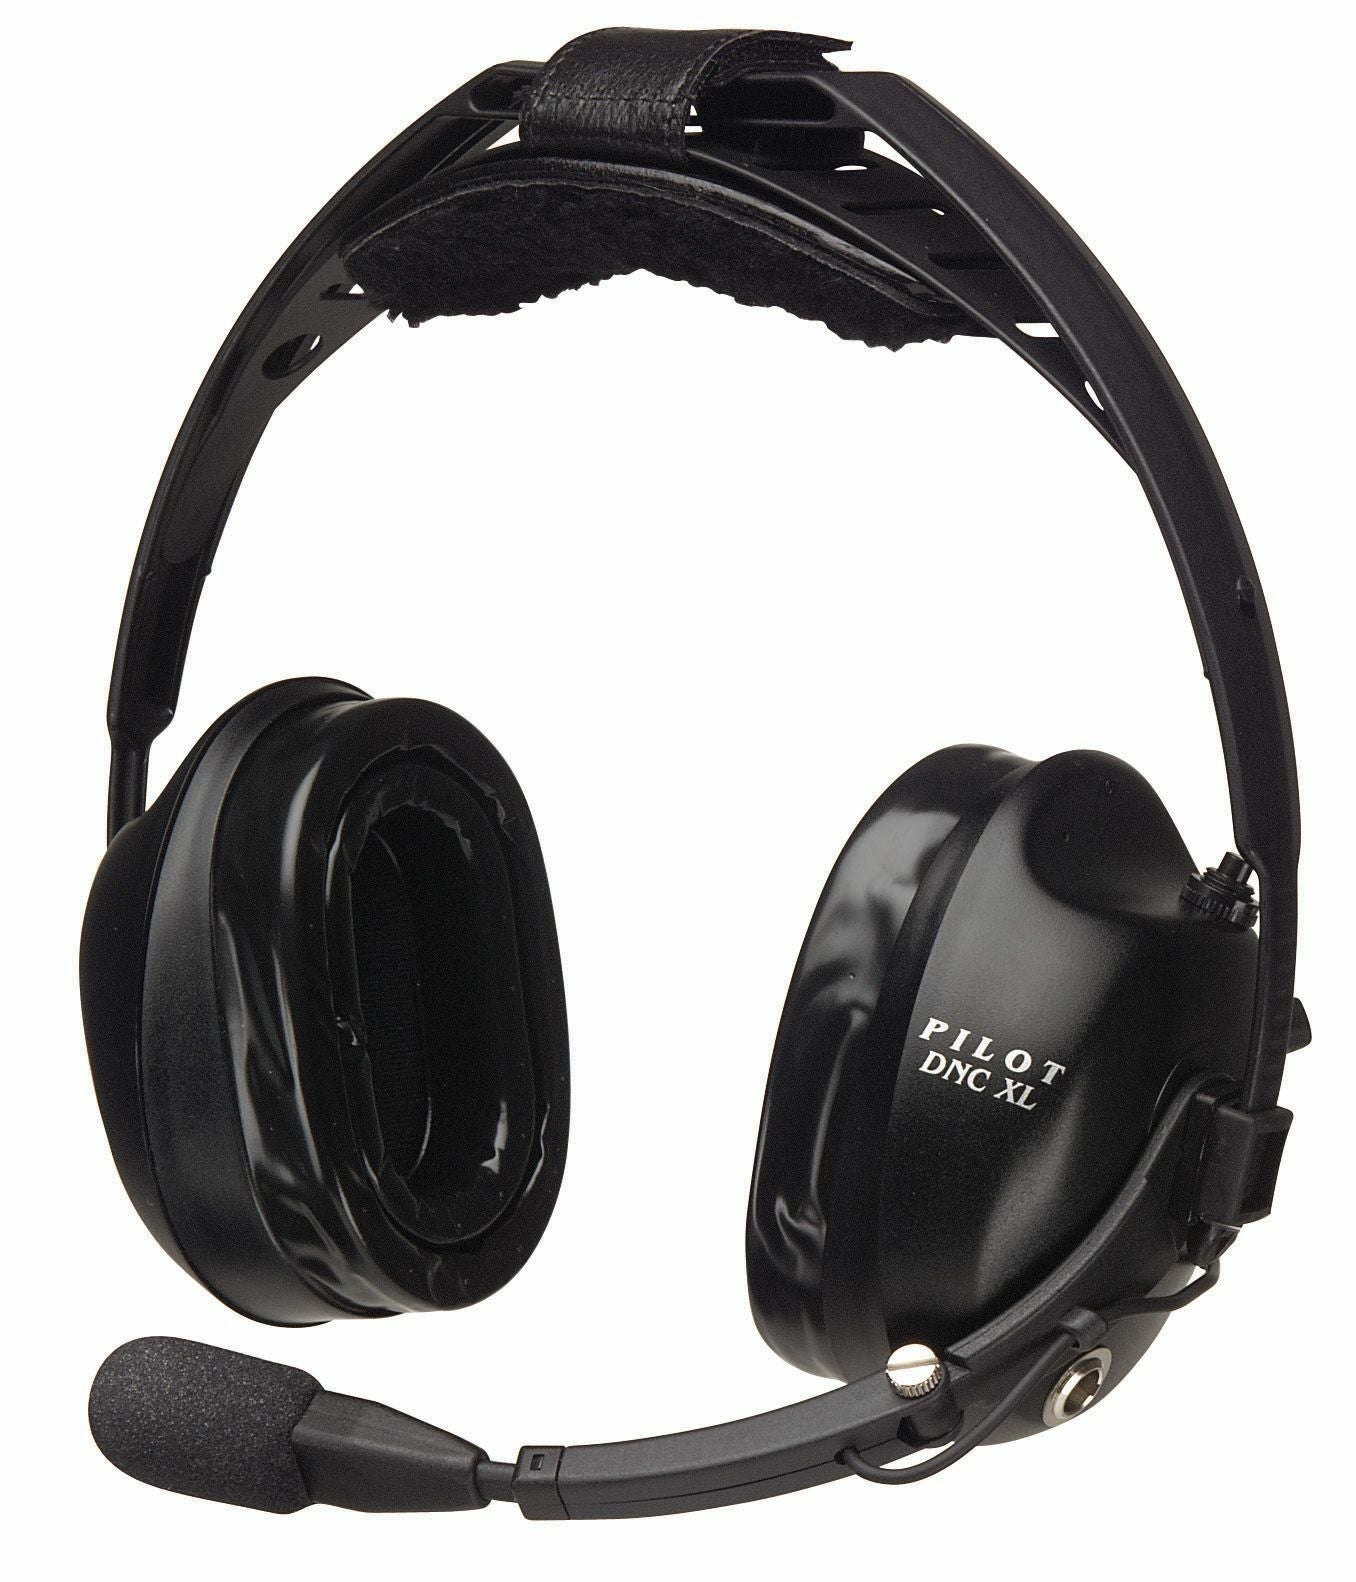 New Pilot PA-1779TP Aviation ANR Cell/Satellite Heli Headset